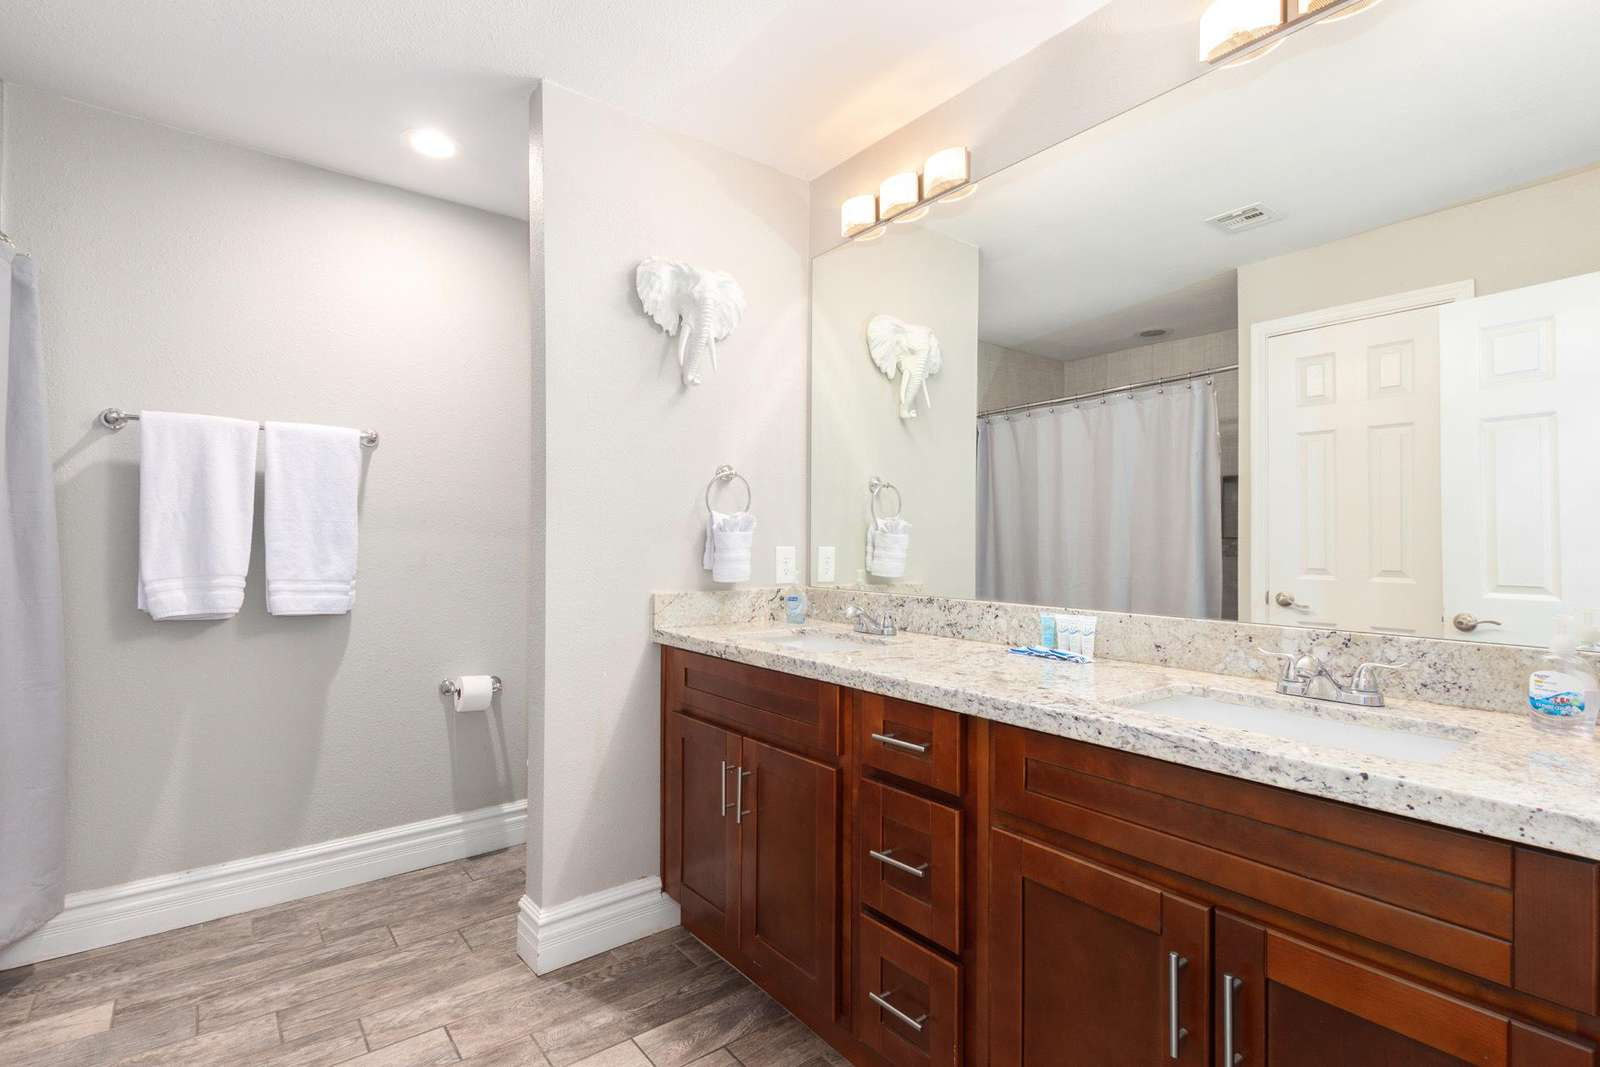 Main Bathroom Has a Tub/Shower combination and also a Double Vanity.